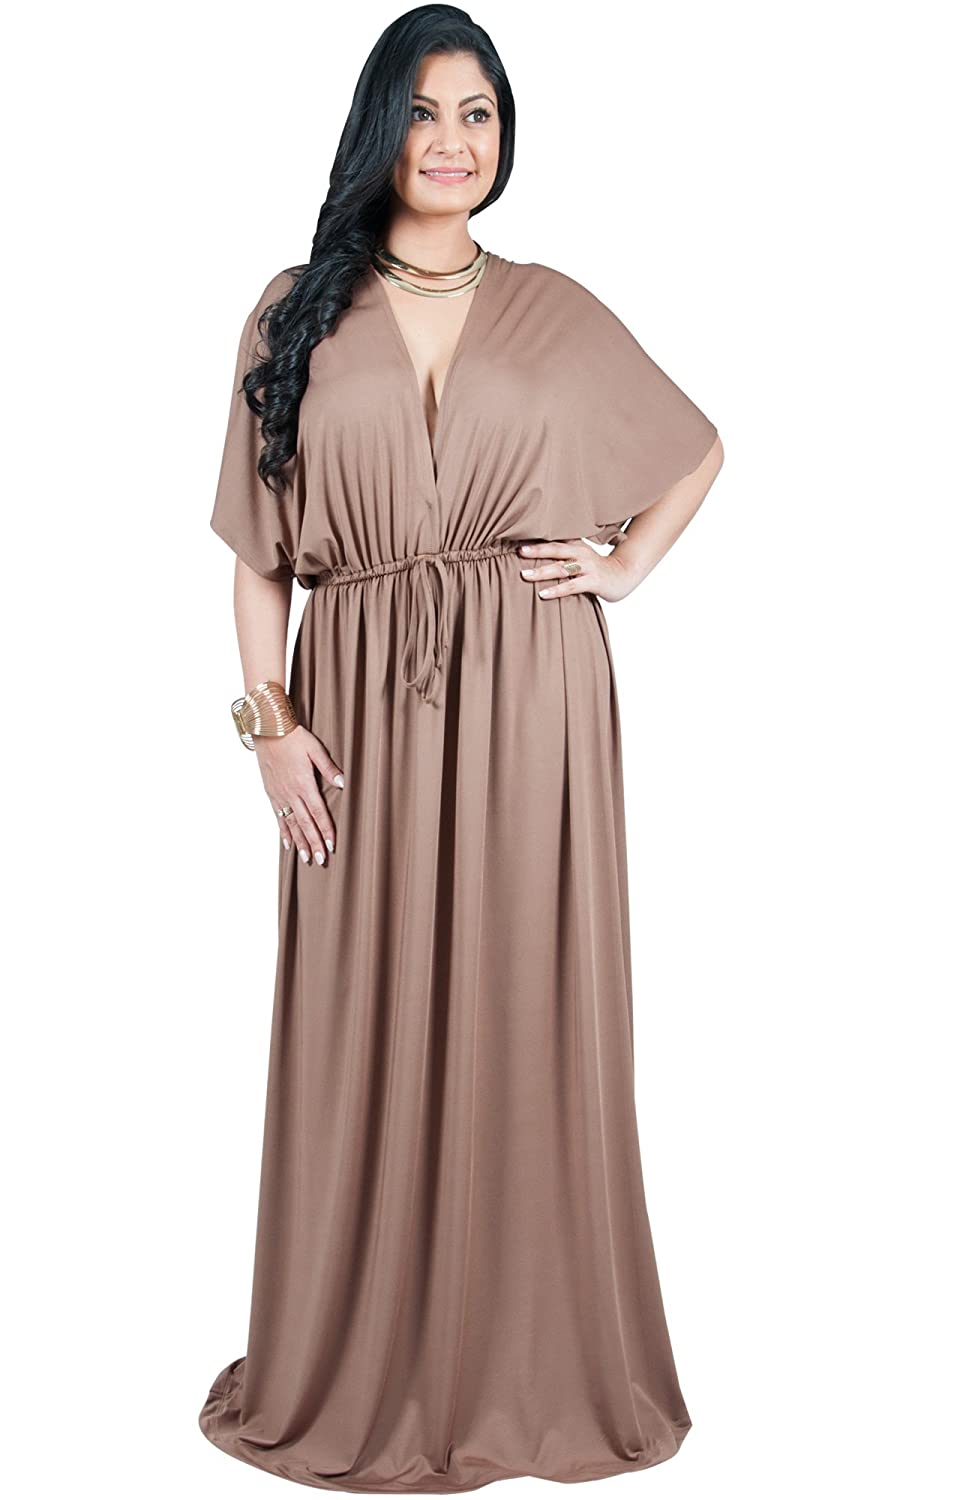 50d61d3a74 PLUS SIZE - This great plus size maxi dress is perfect for women with  wonderful curves. STYLE - Kimono ...